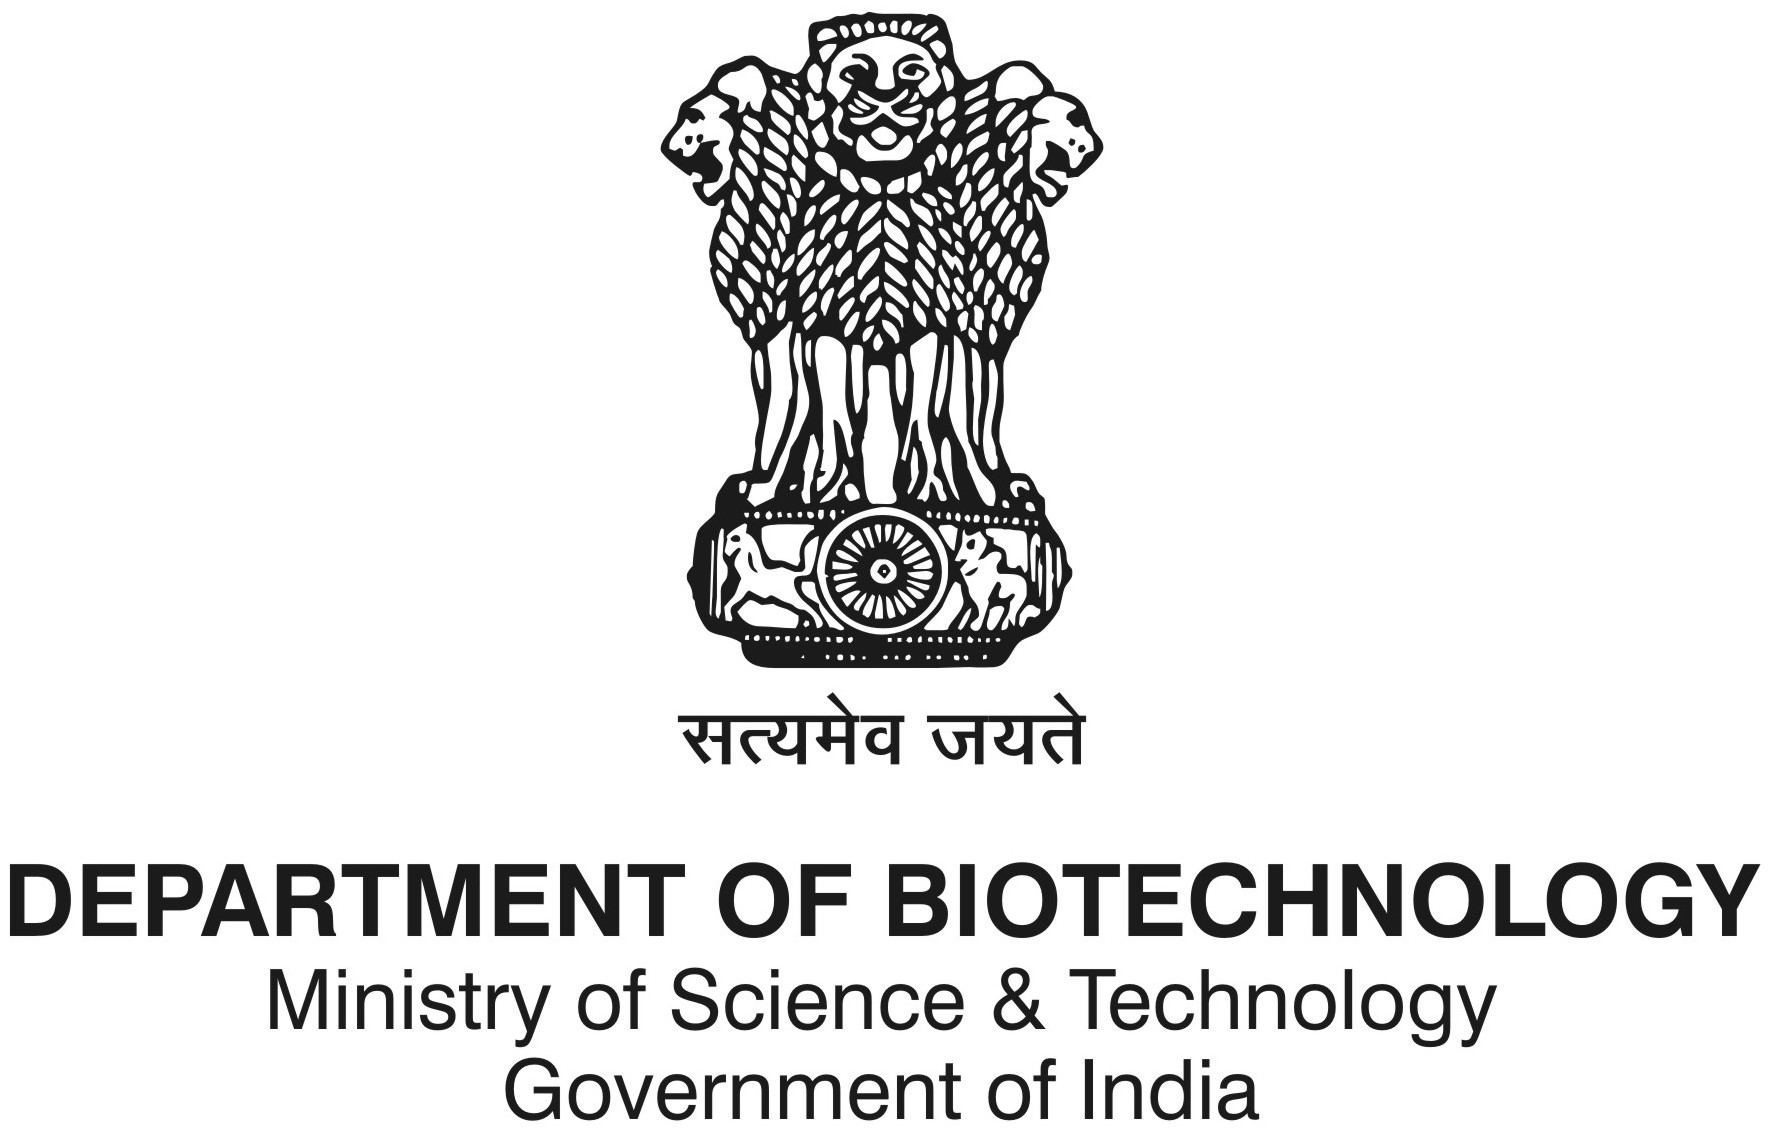 Department of Biotechnology